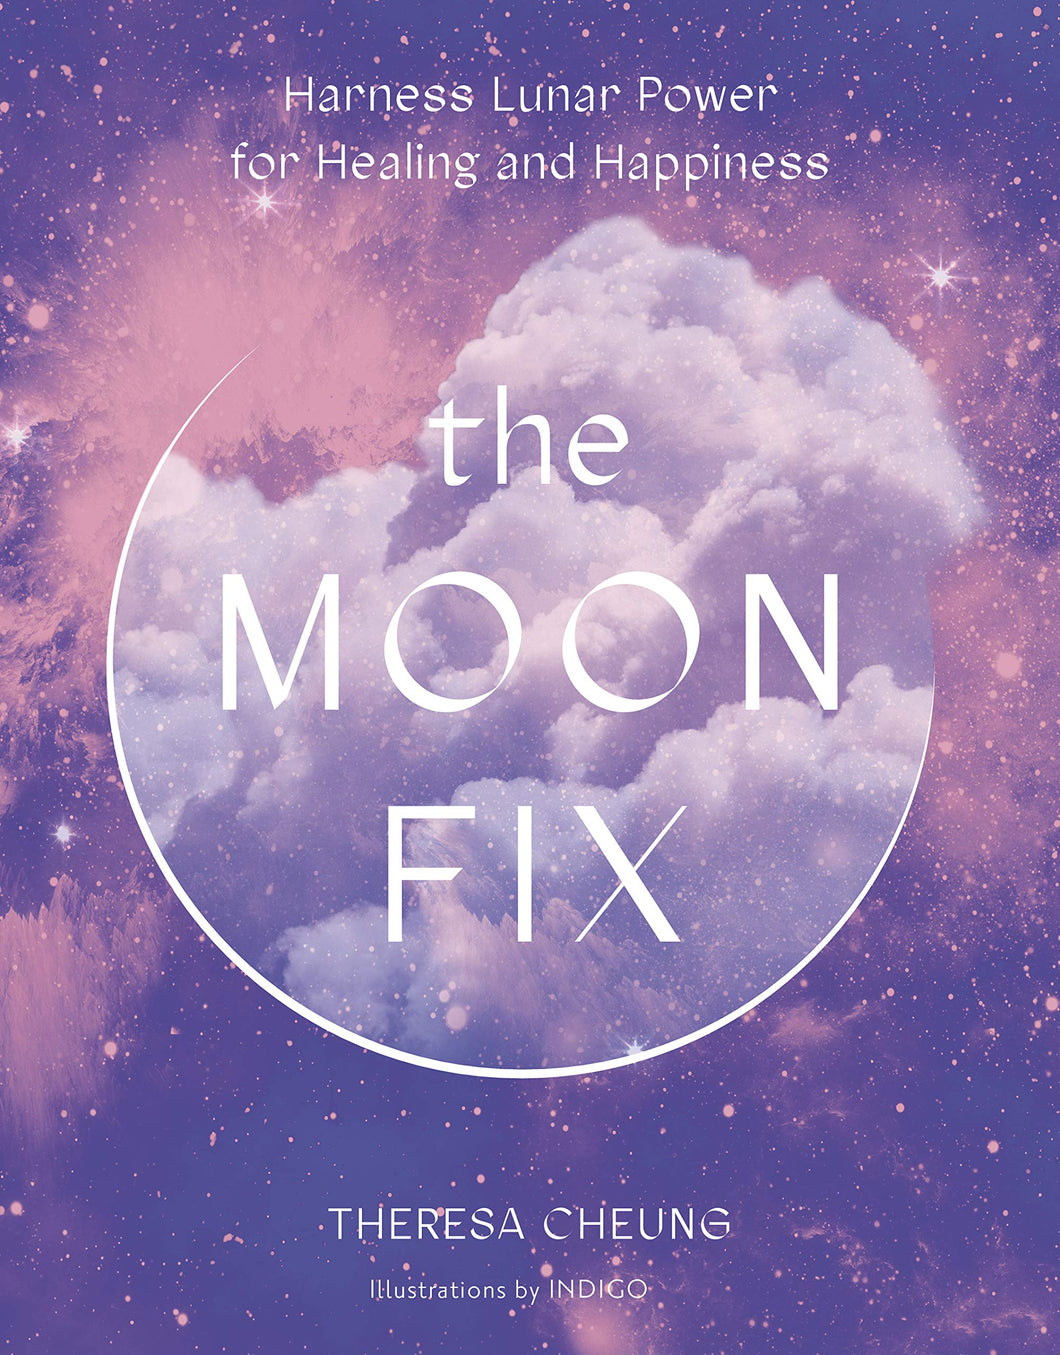 The Moon Fix (Theresa Cheung)